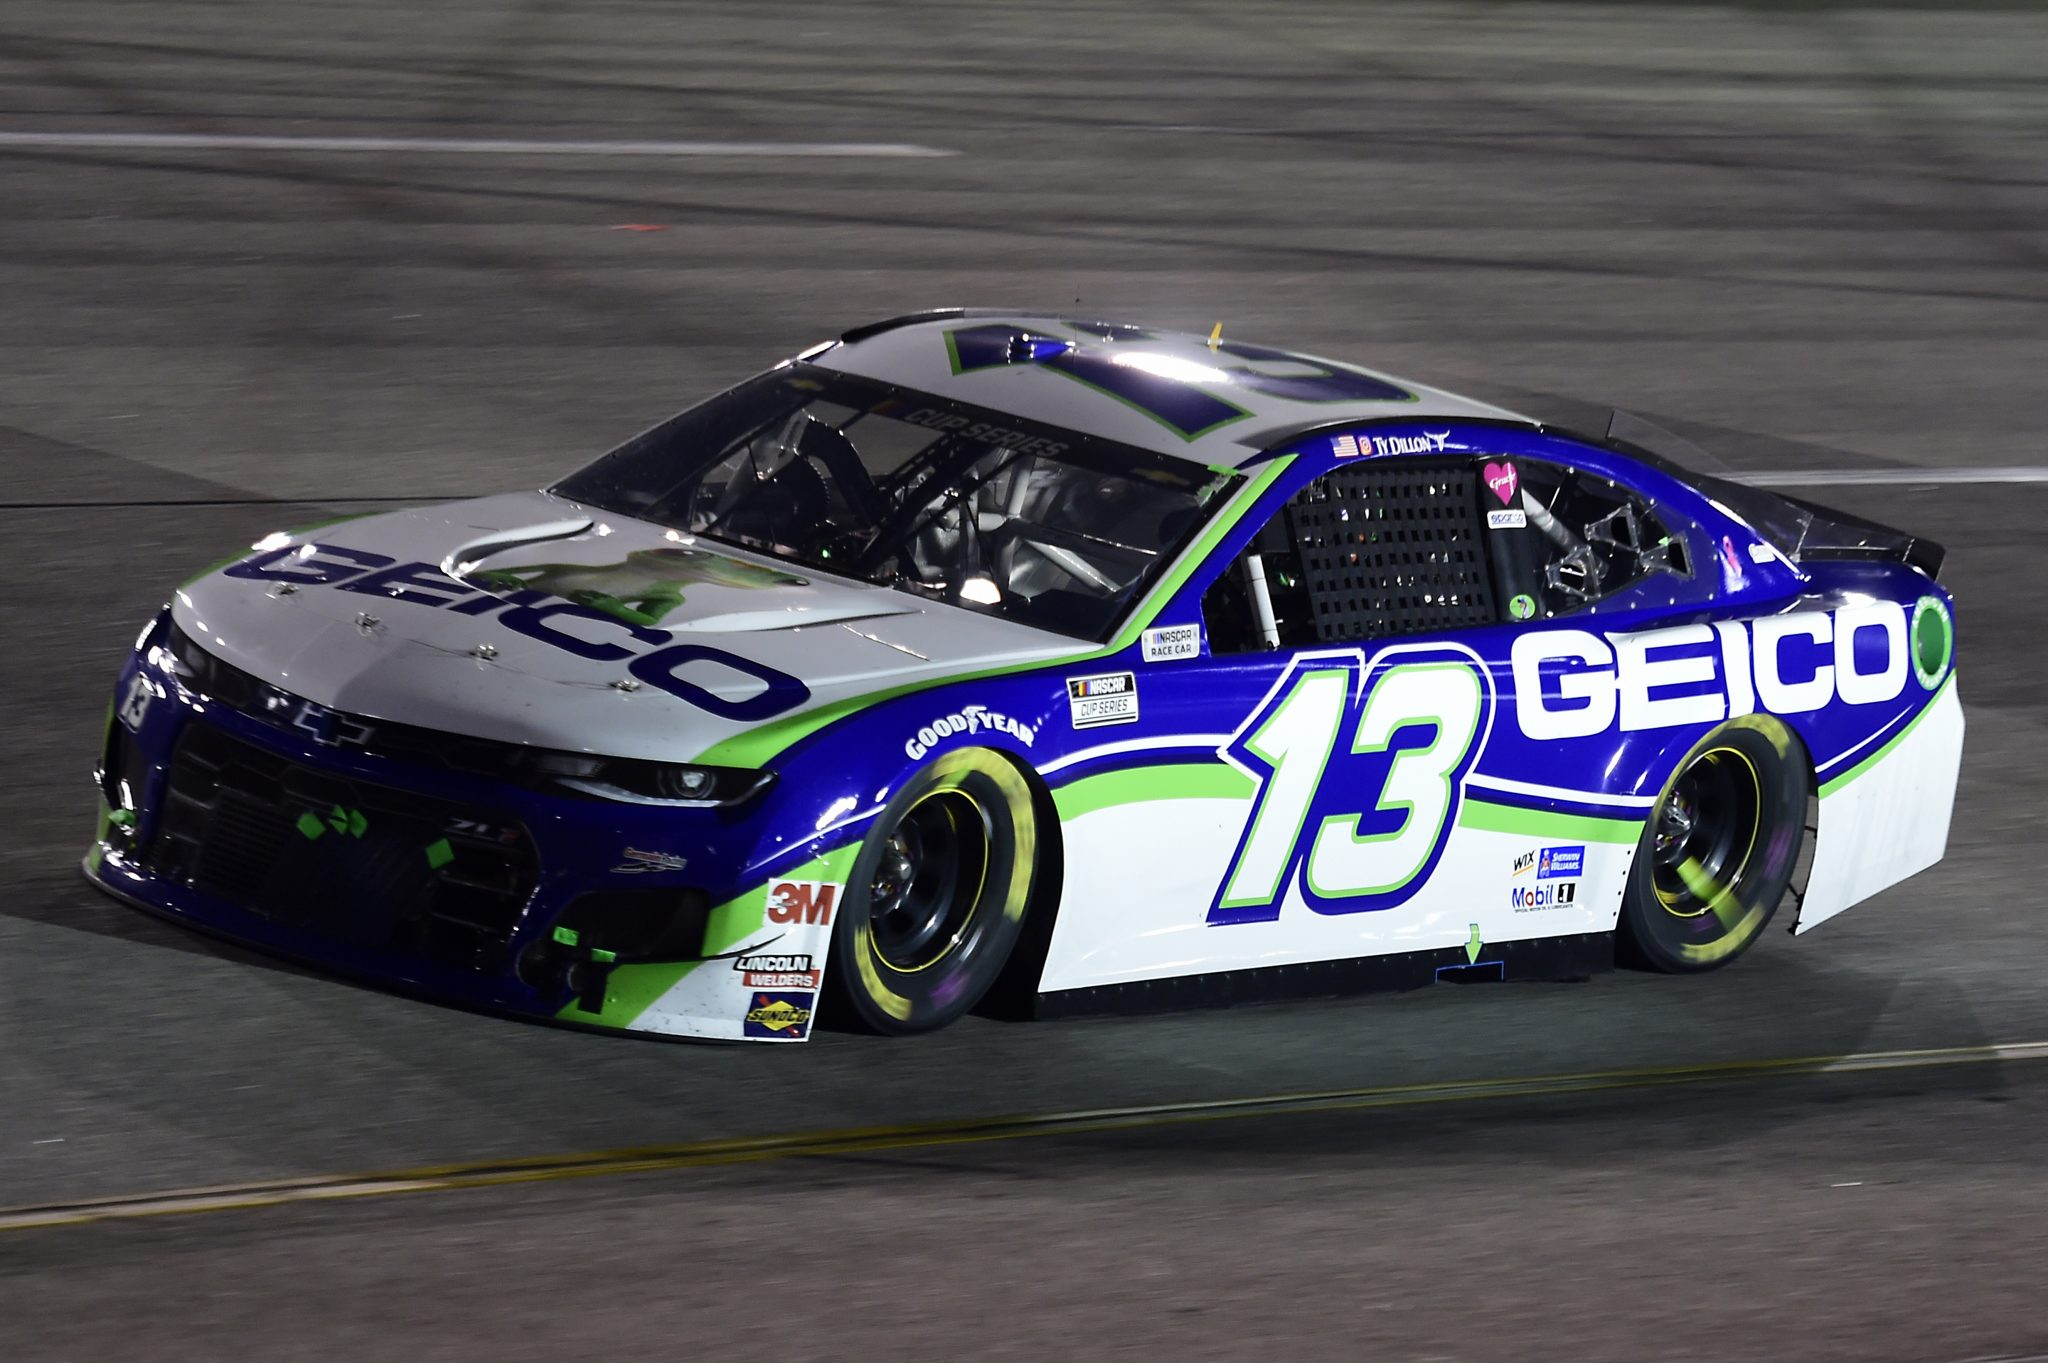 RICHMOND, VIRGINIA - SEPTEMBER 12: Ty Dillon, driver of the #13 GEICO Chevrolet, drives during the NASCAR Cup Series Federated Auto Parts 400 at Richmond Raceway on September 12, 2020 in Richmond, Virginia. (Photo by Jared C. Tilton/Getty Images) | Getty Images